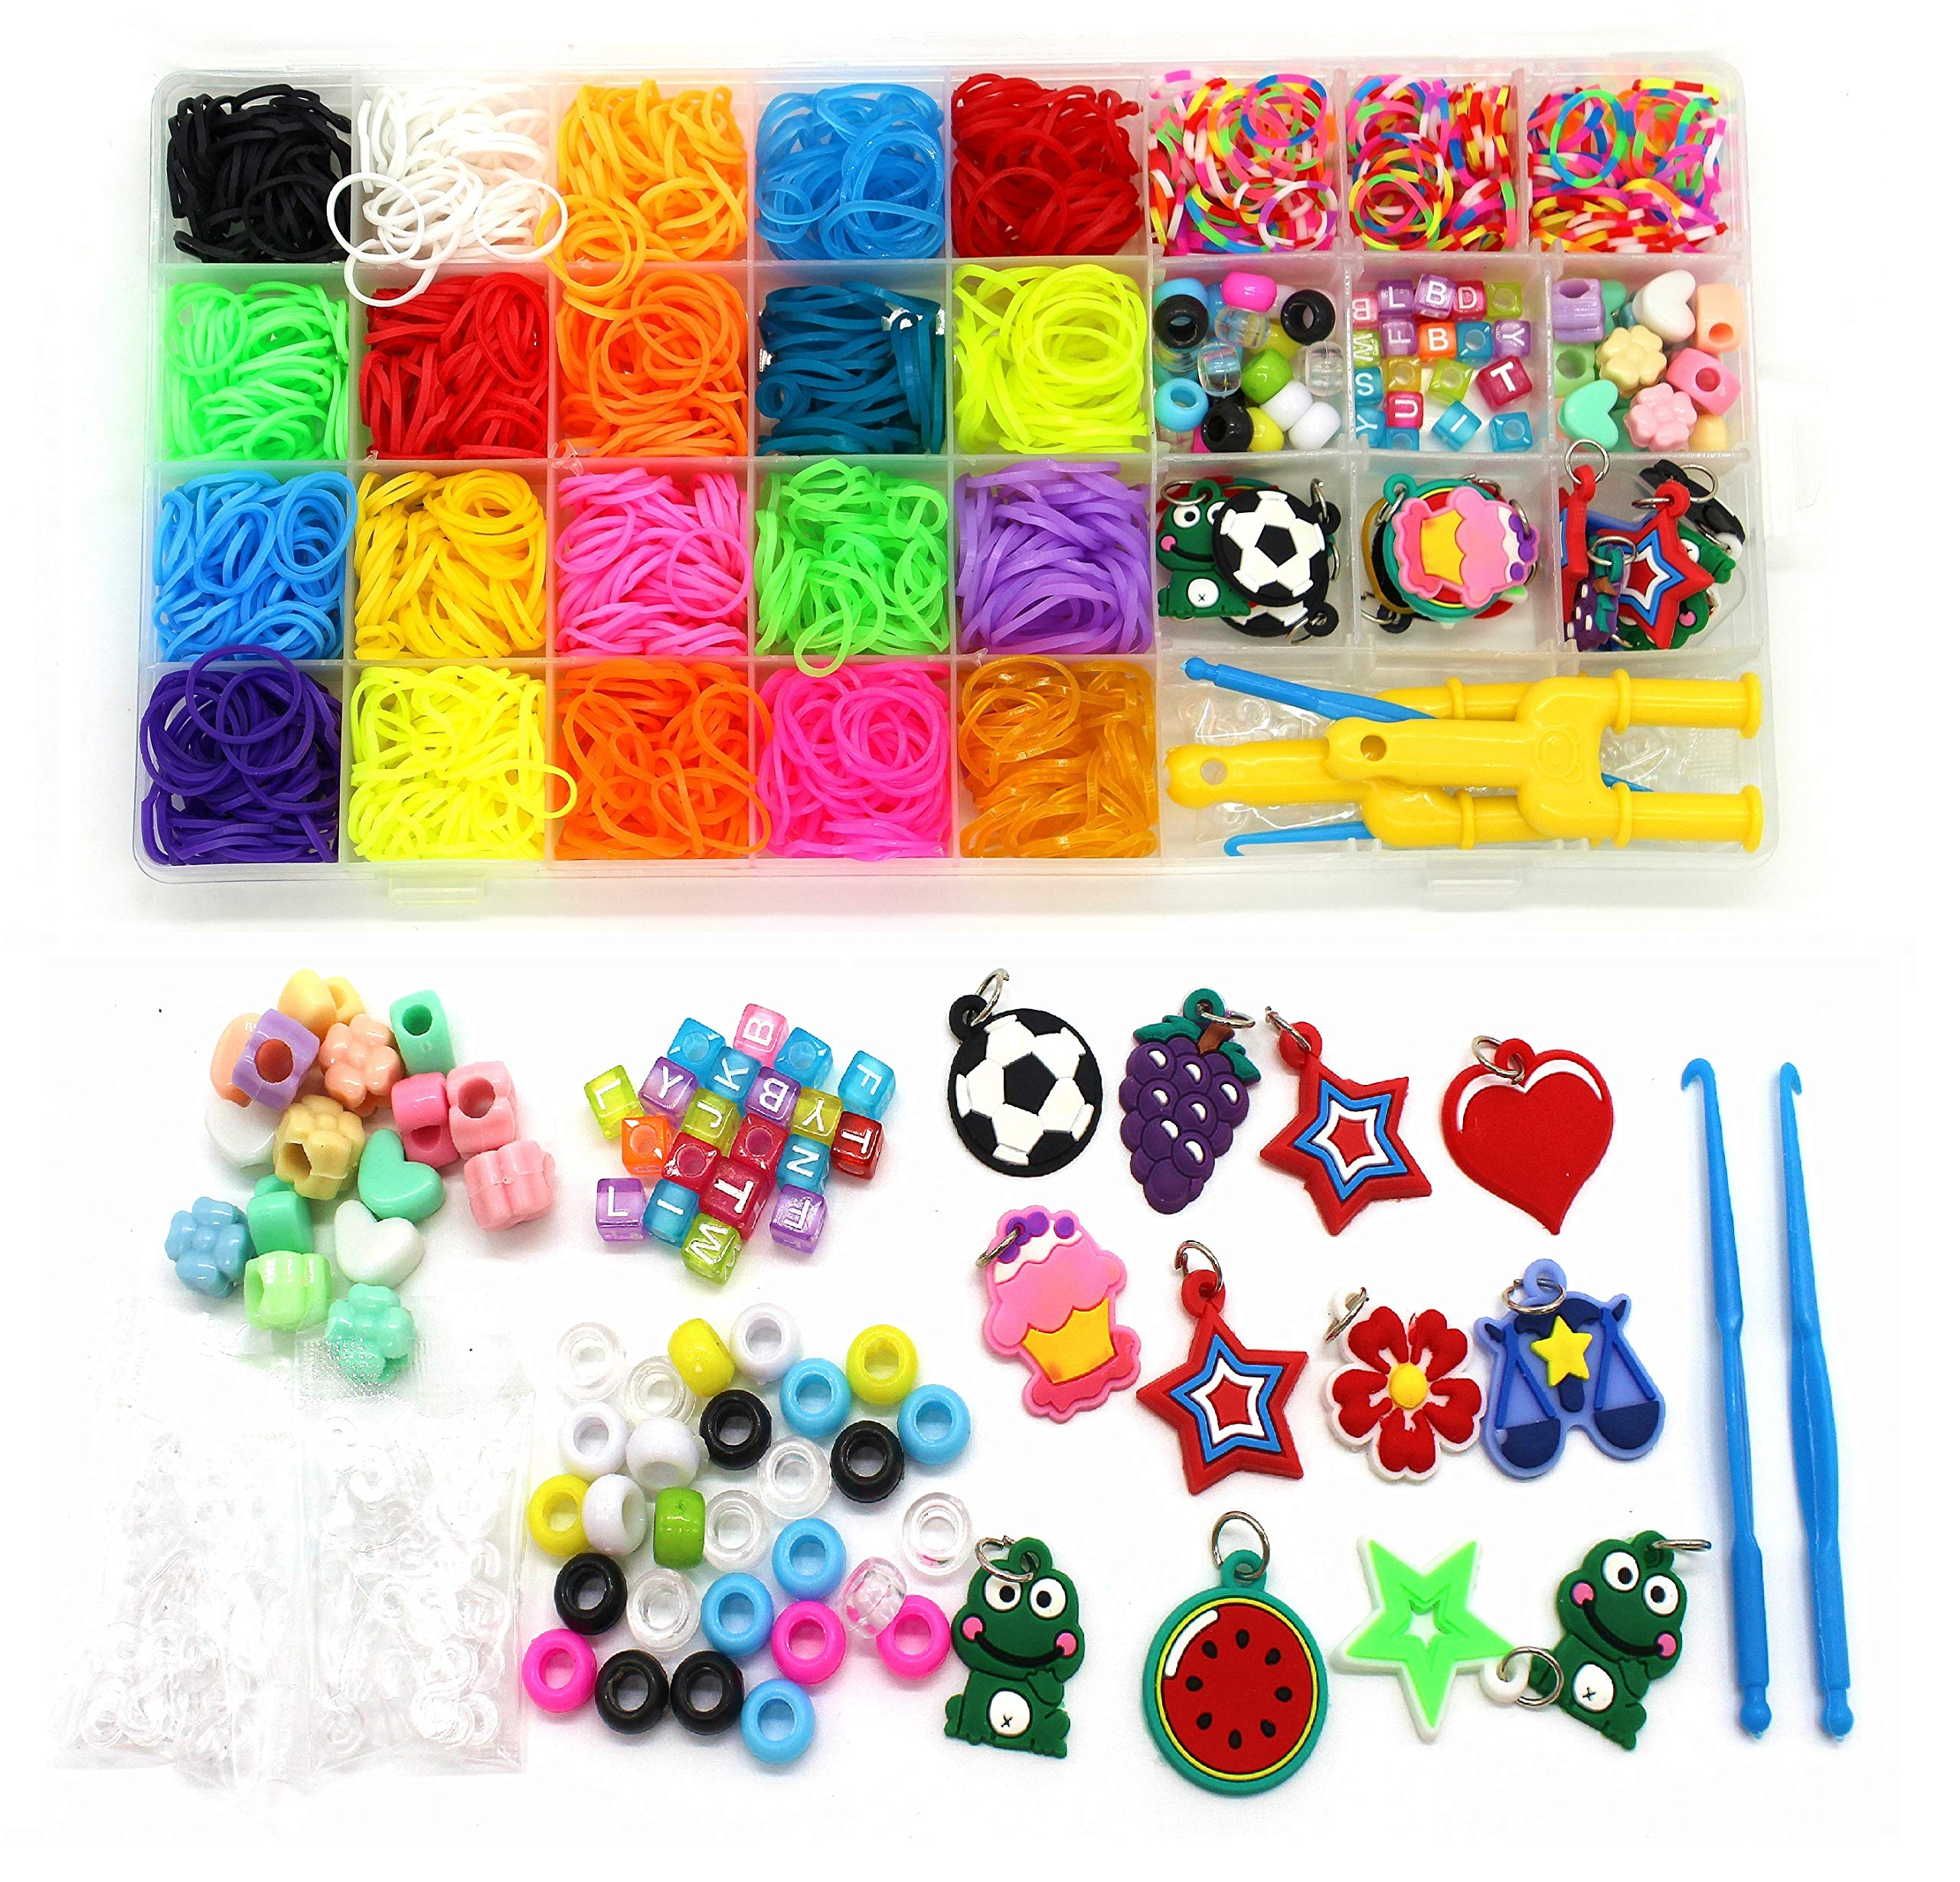 Rainbow Rubber Bands Refill Kit-Assorted Colors Loom Bands(2000+)-24 S-Clips, 2 Y Looms, 60 Beads, 10 Charms, 2 Backpack Hooks,Crochet Hooks-loom bands Add On Accessories-Bracelet Making Kit For Kids by Wakestar